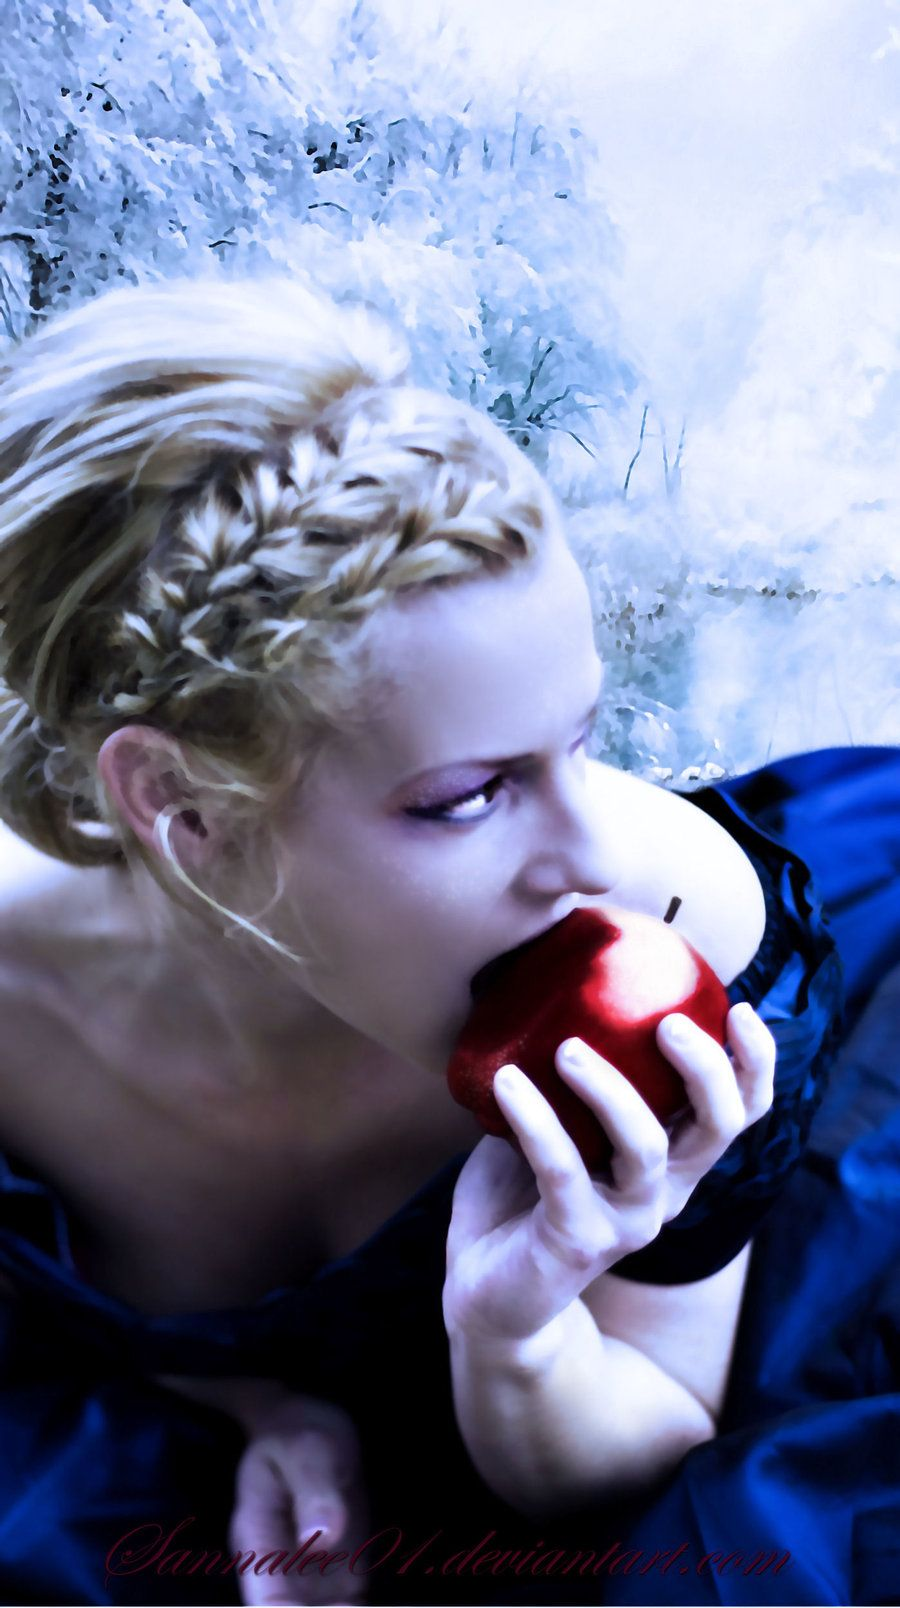 Once upon a time the Evil Queen gave Snow White a poisoned apple ...